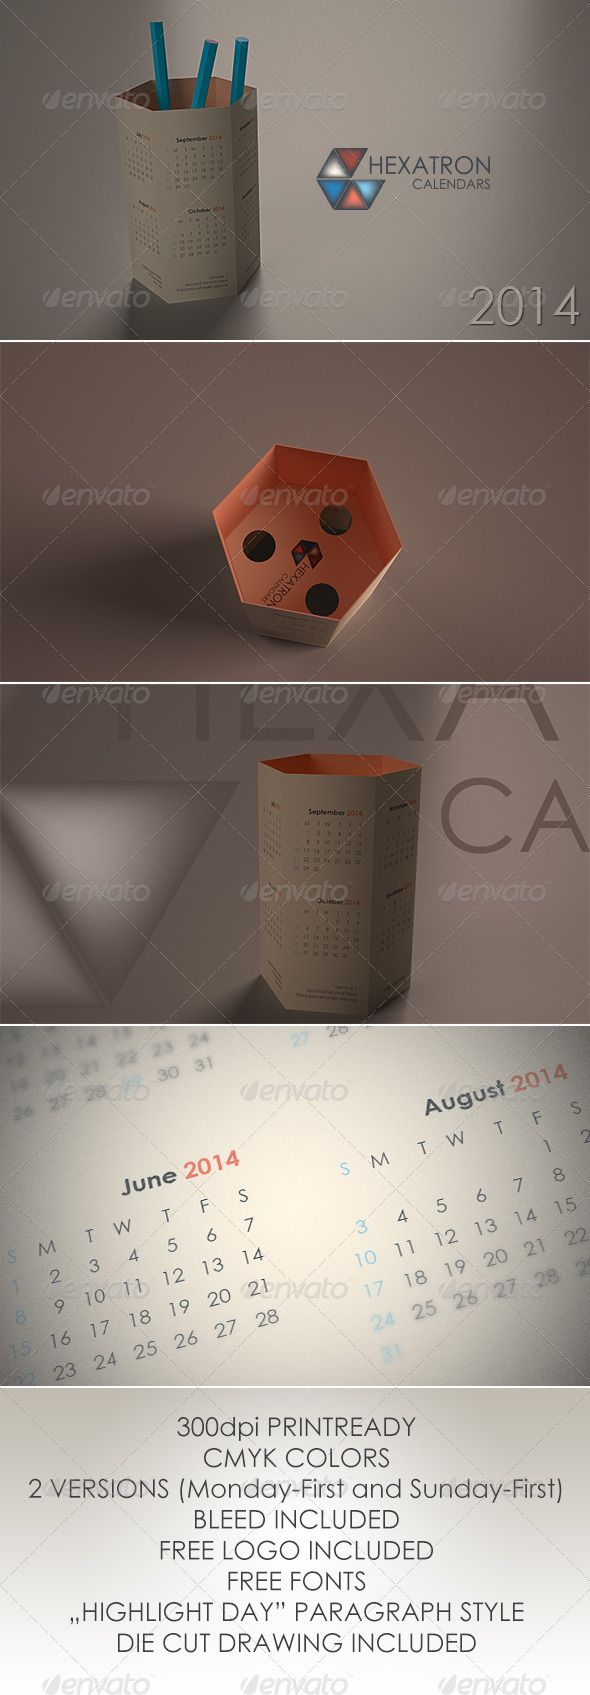 Hexatron Calendars 2014 #GraphicRiver Hexagonal based calendar in two versions (Monday-first and Sunday first) for 2014. - Printready 300dpi - Bleed included - DieCut drawing included in EPS format - Free fonts (Century Gothic Regular/Bold) - Logo included in EPS format Created: 15August13 GraphicsFilesIncluded: VectorEPS #InDesignINDD Layered: Yes MinimumAdobeCSVersion: CS4 PrintDimensions: 300x260 Tags: business #calendar #cmyk #creative #diecut #indesign #layered #modern #newyear #print…